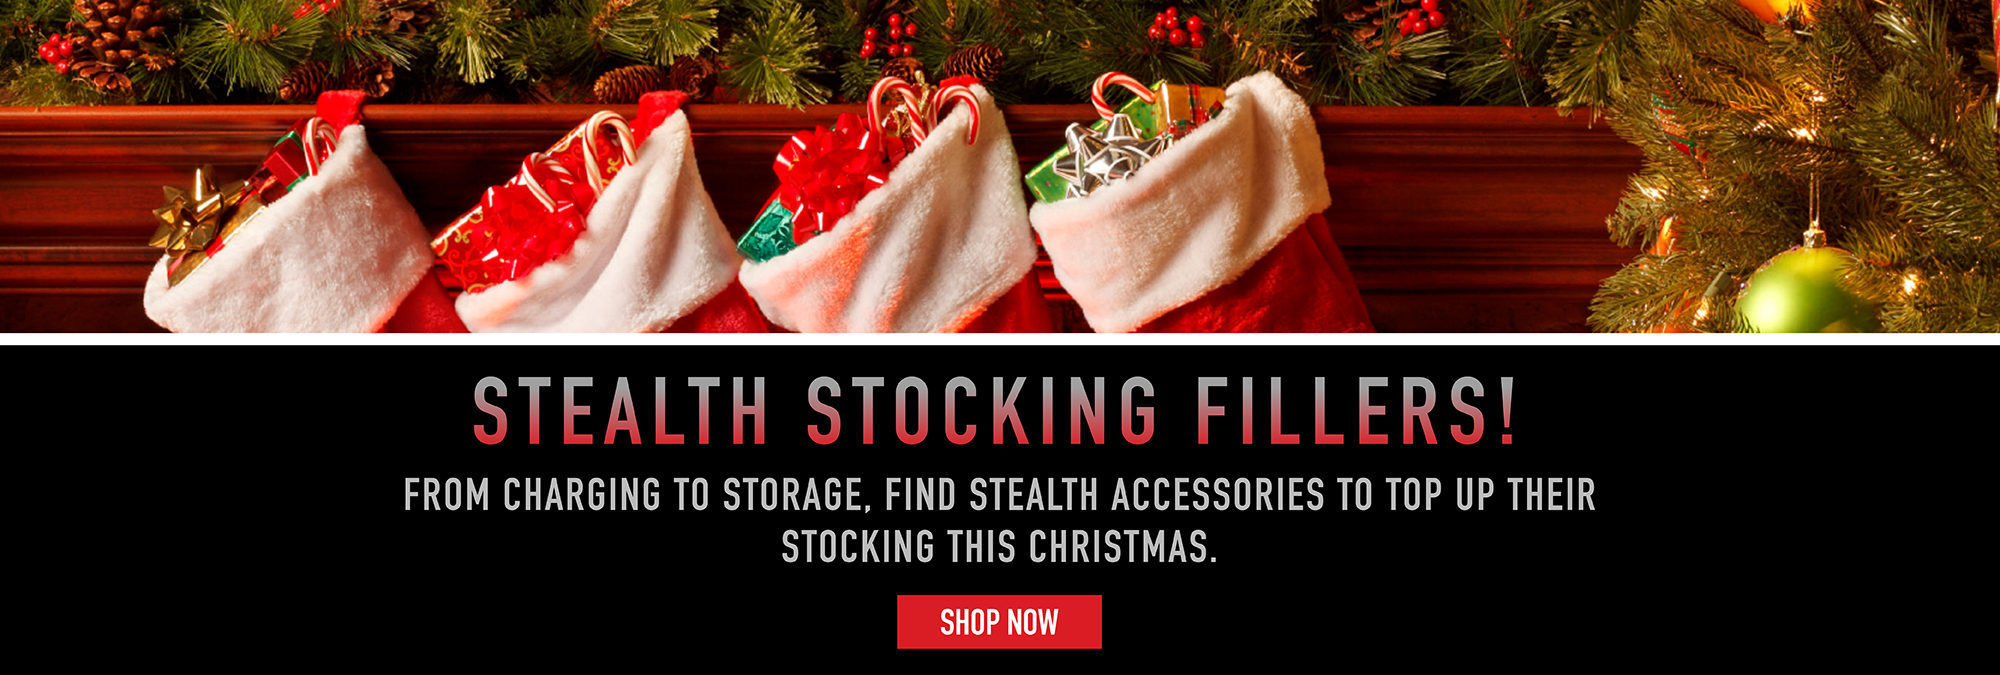 STEALTH Stocking Fillers